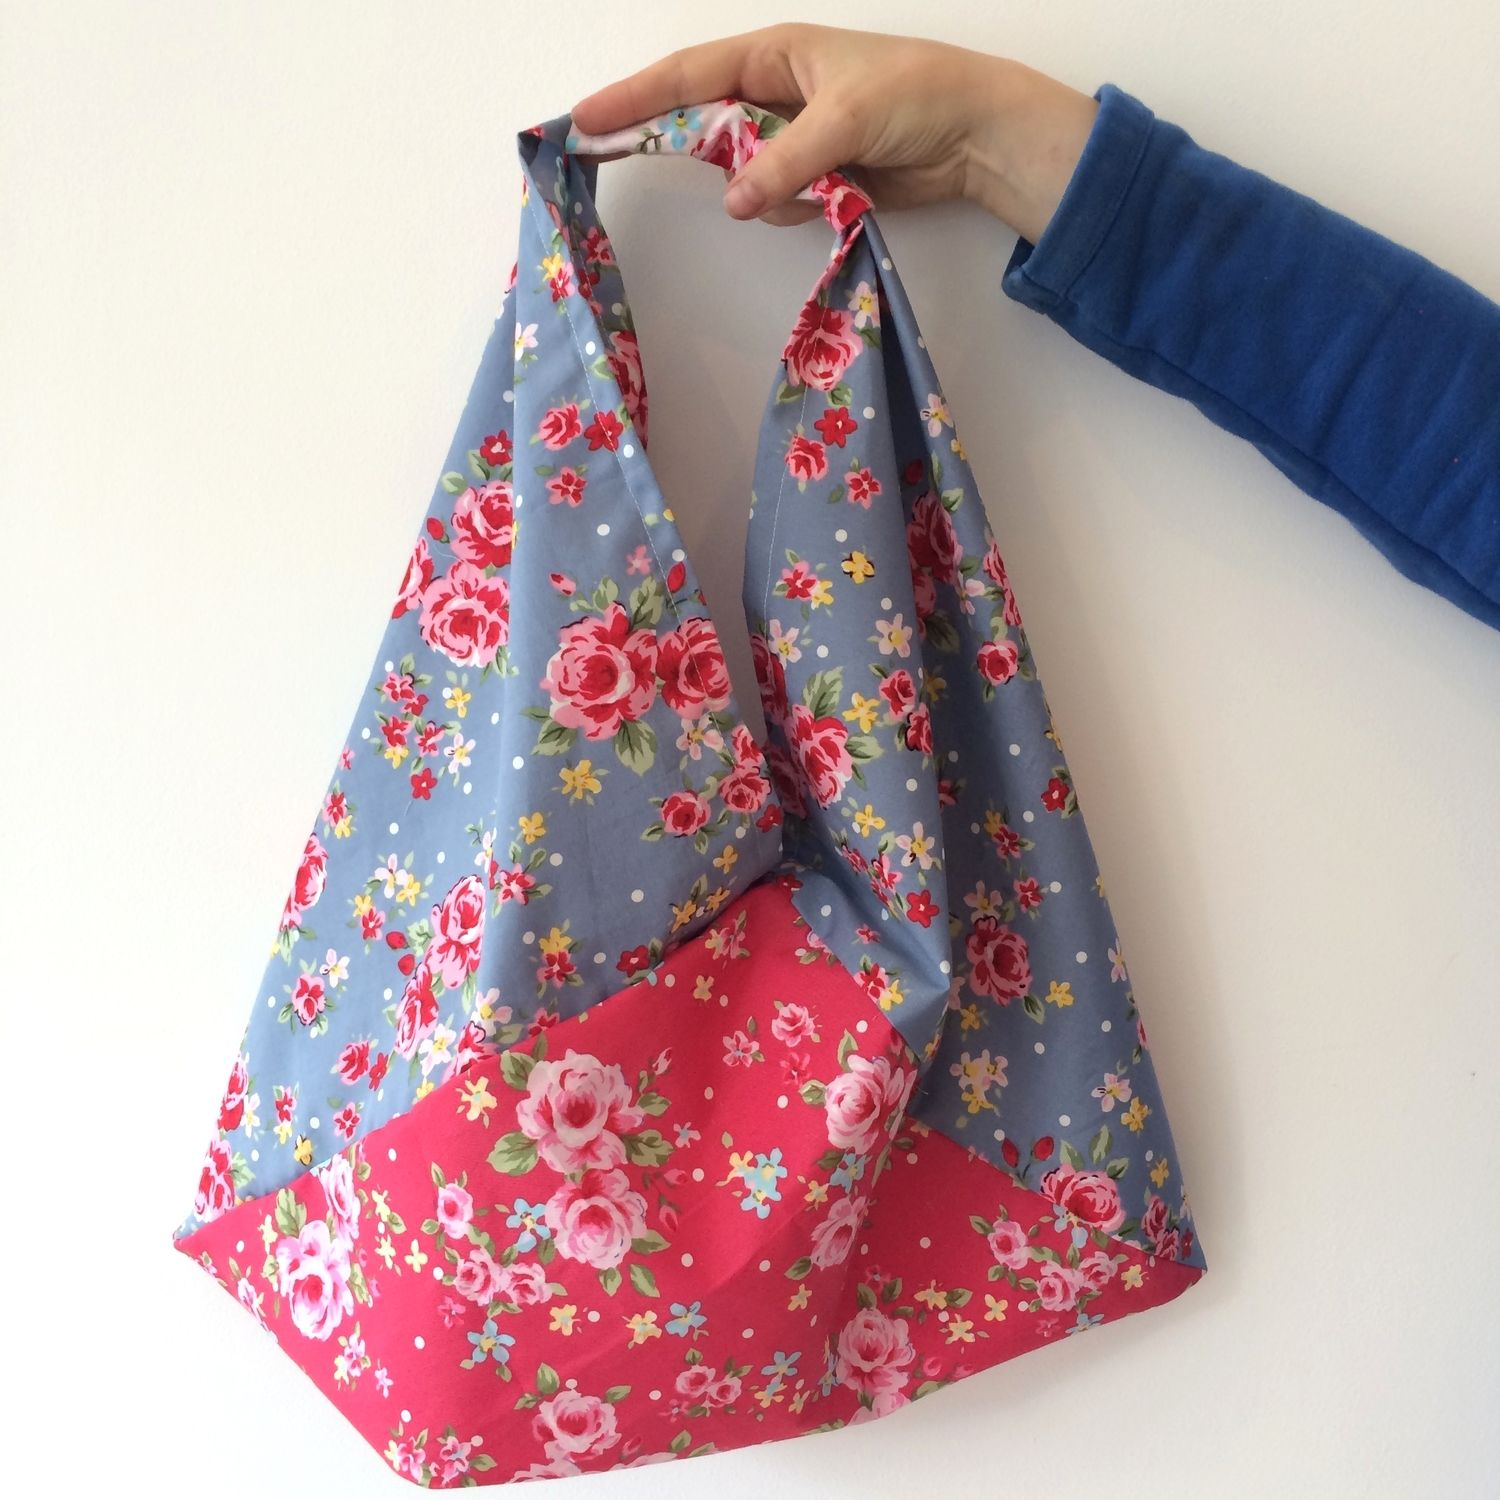 Crazy For Bento Bags Origami Bag Japanese Knot Bag Japanese Sewing Patterns